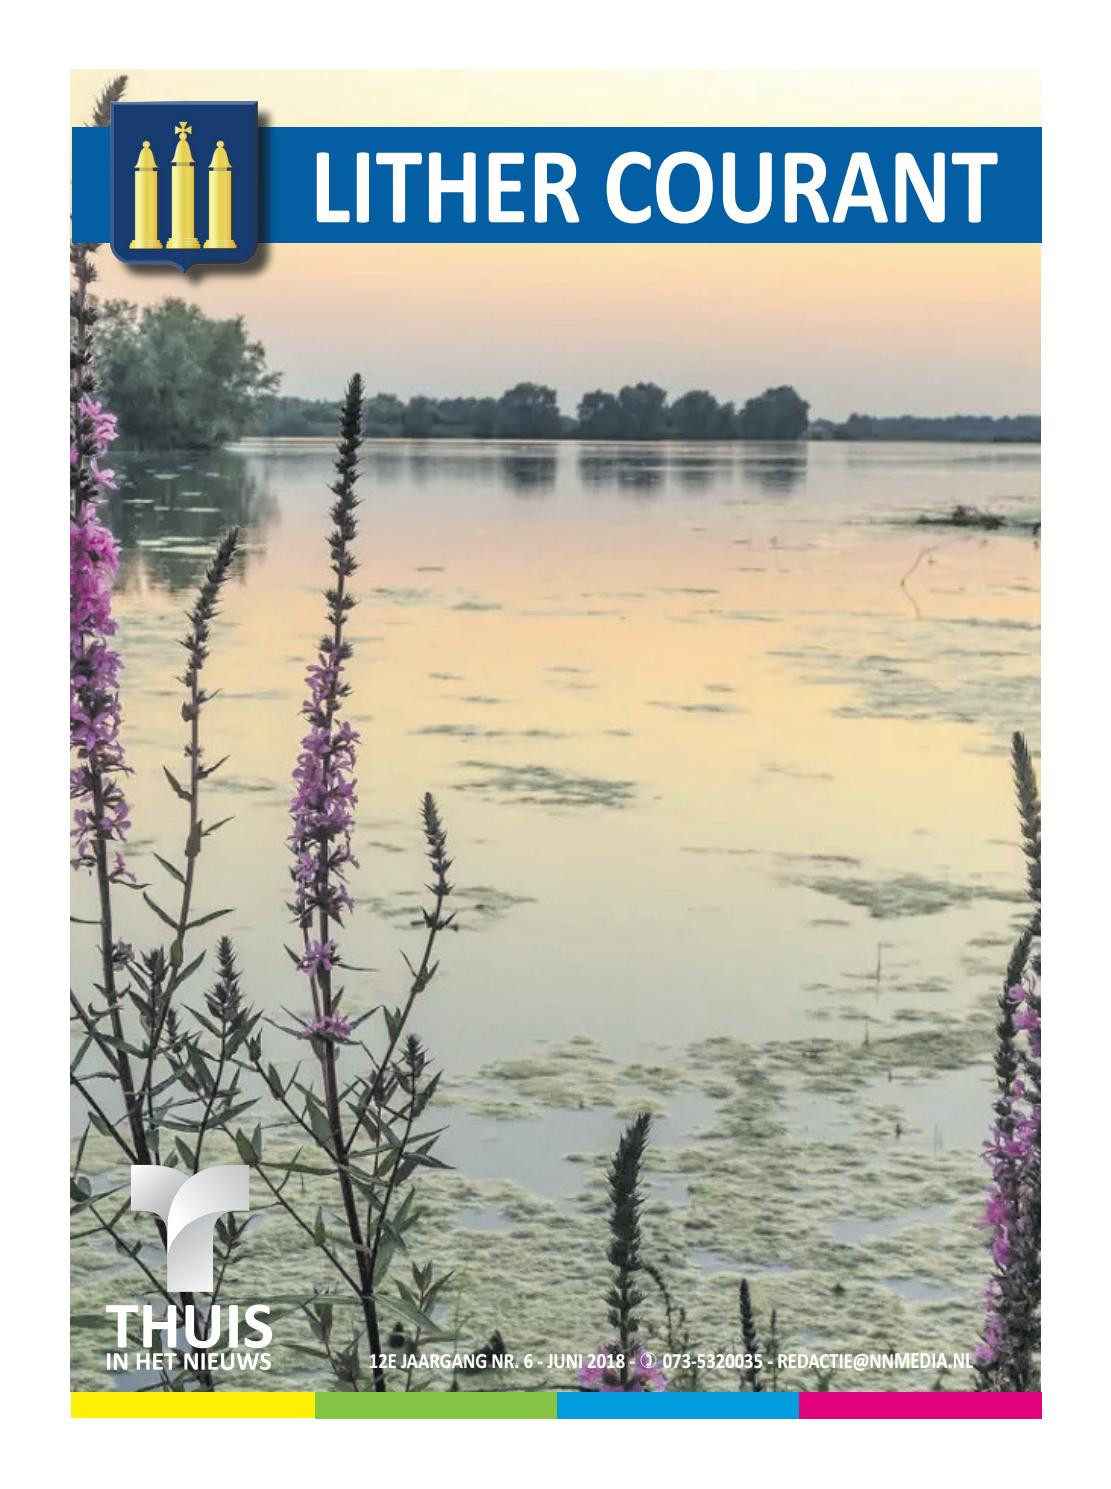 Lither Courant 1806 4 6 2018 By Thuisinhetnieuws Issuu